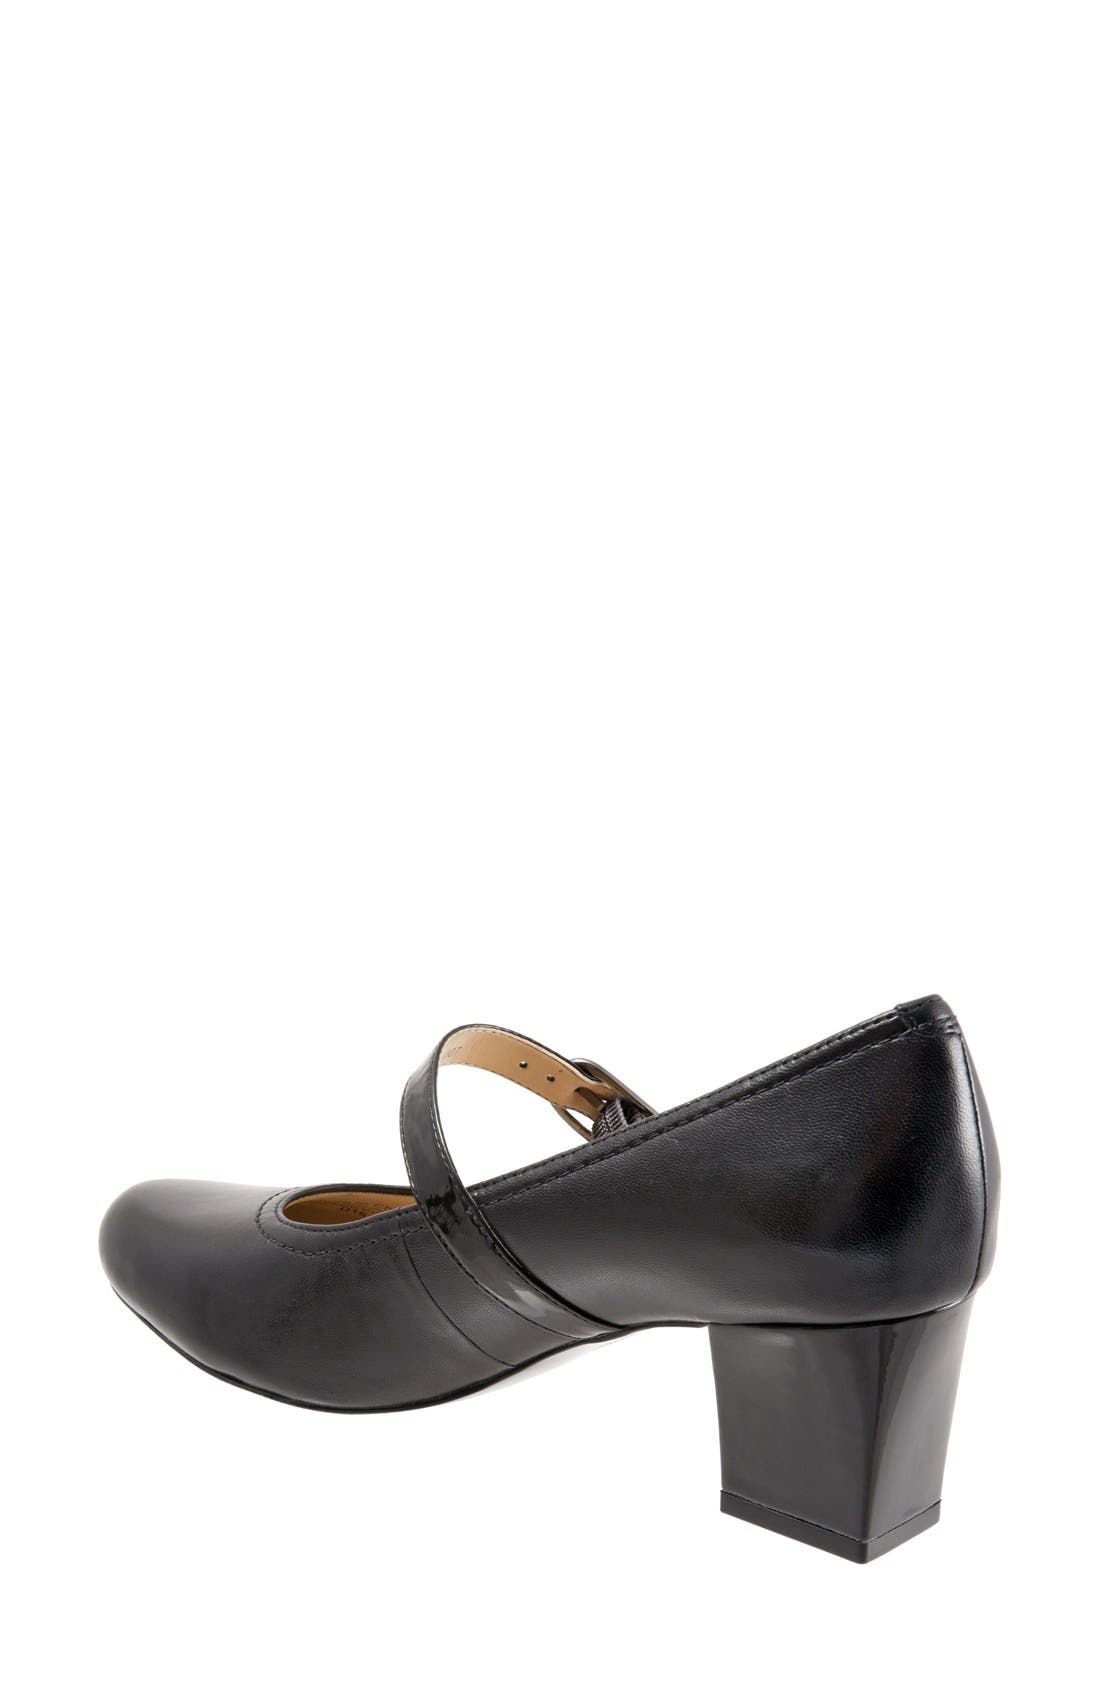 'Candice' Mary Jane Pump,                             Alternate thumbnail 6, color,                             BLACK LEATHER